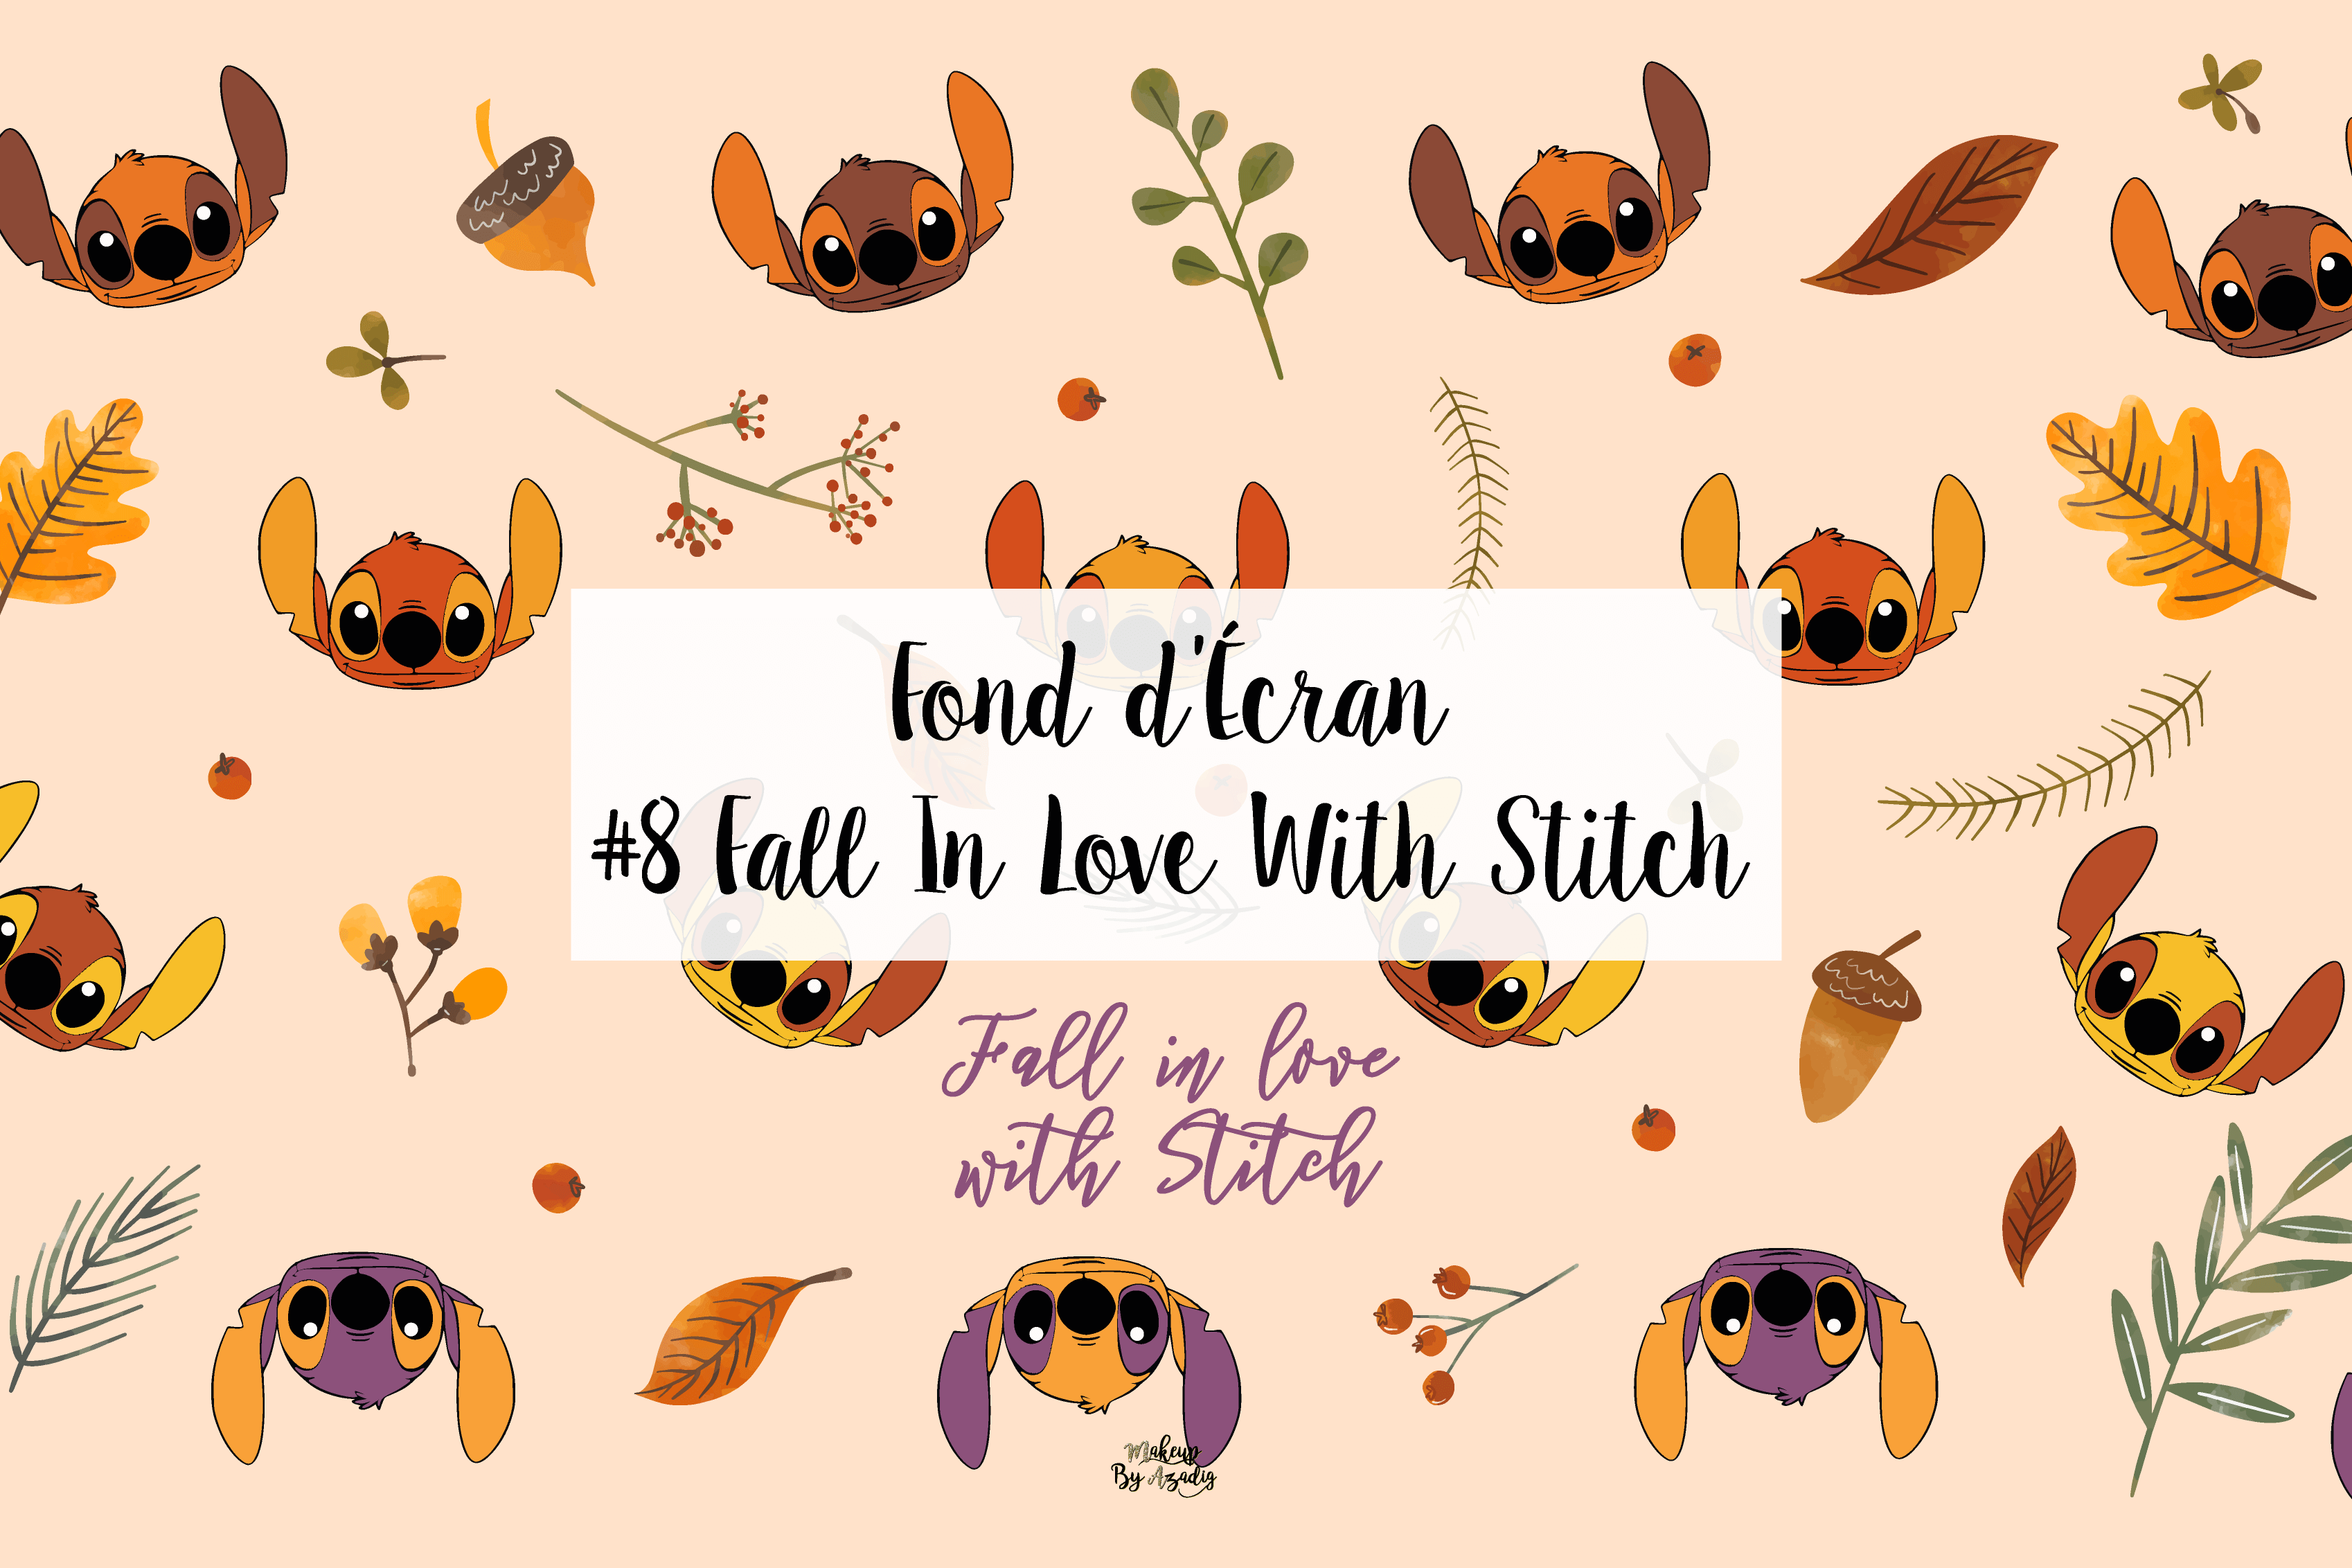 fond-decran-wallpaper-stitch-autumn-automne-fallinlove-disney-ordinateur-iphone-samsung-mac-macbook-imac-pc-makeupbyazadig-tendance